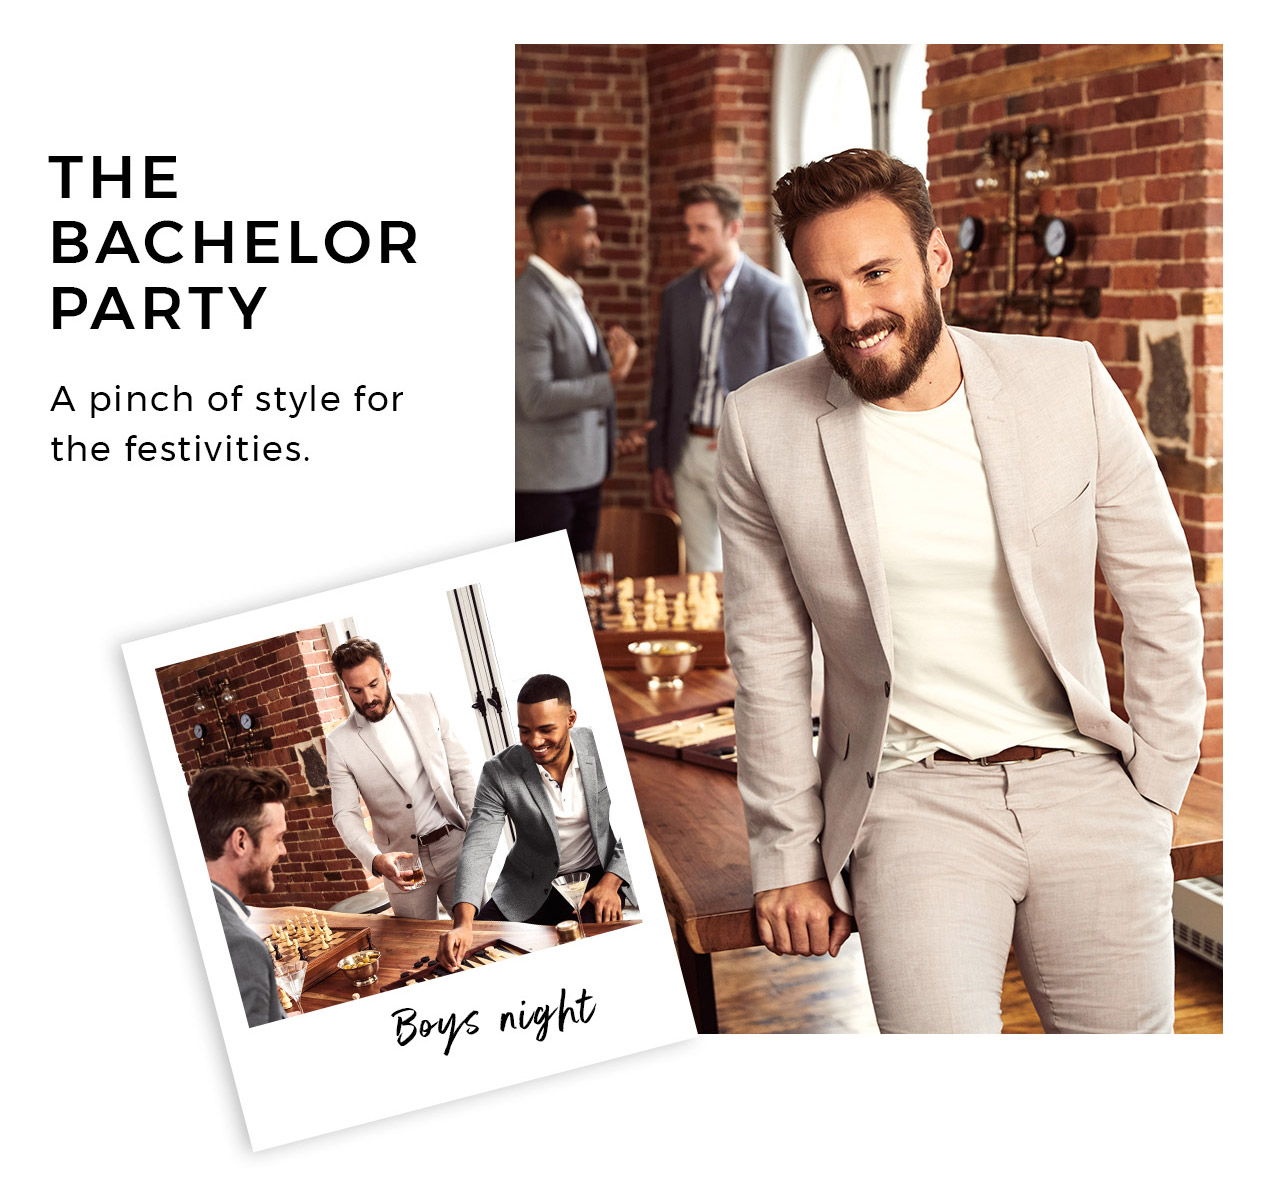 The bachelor party. A pinch of style for the festivities.